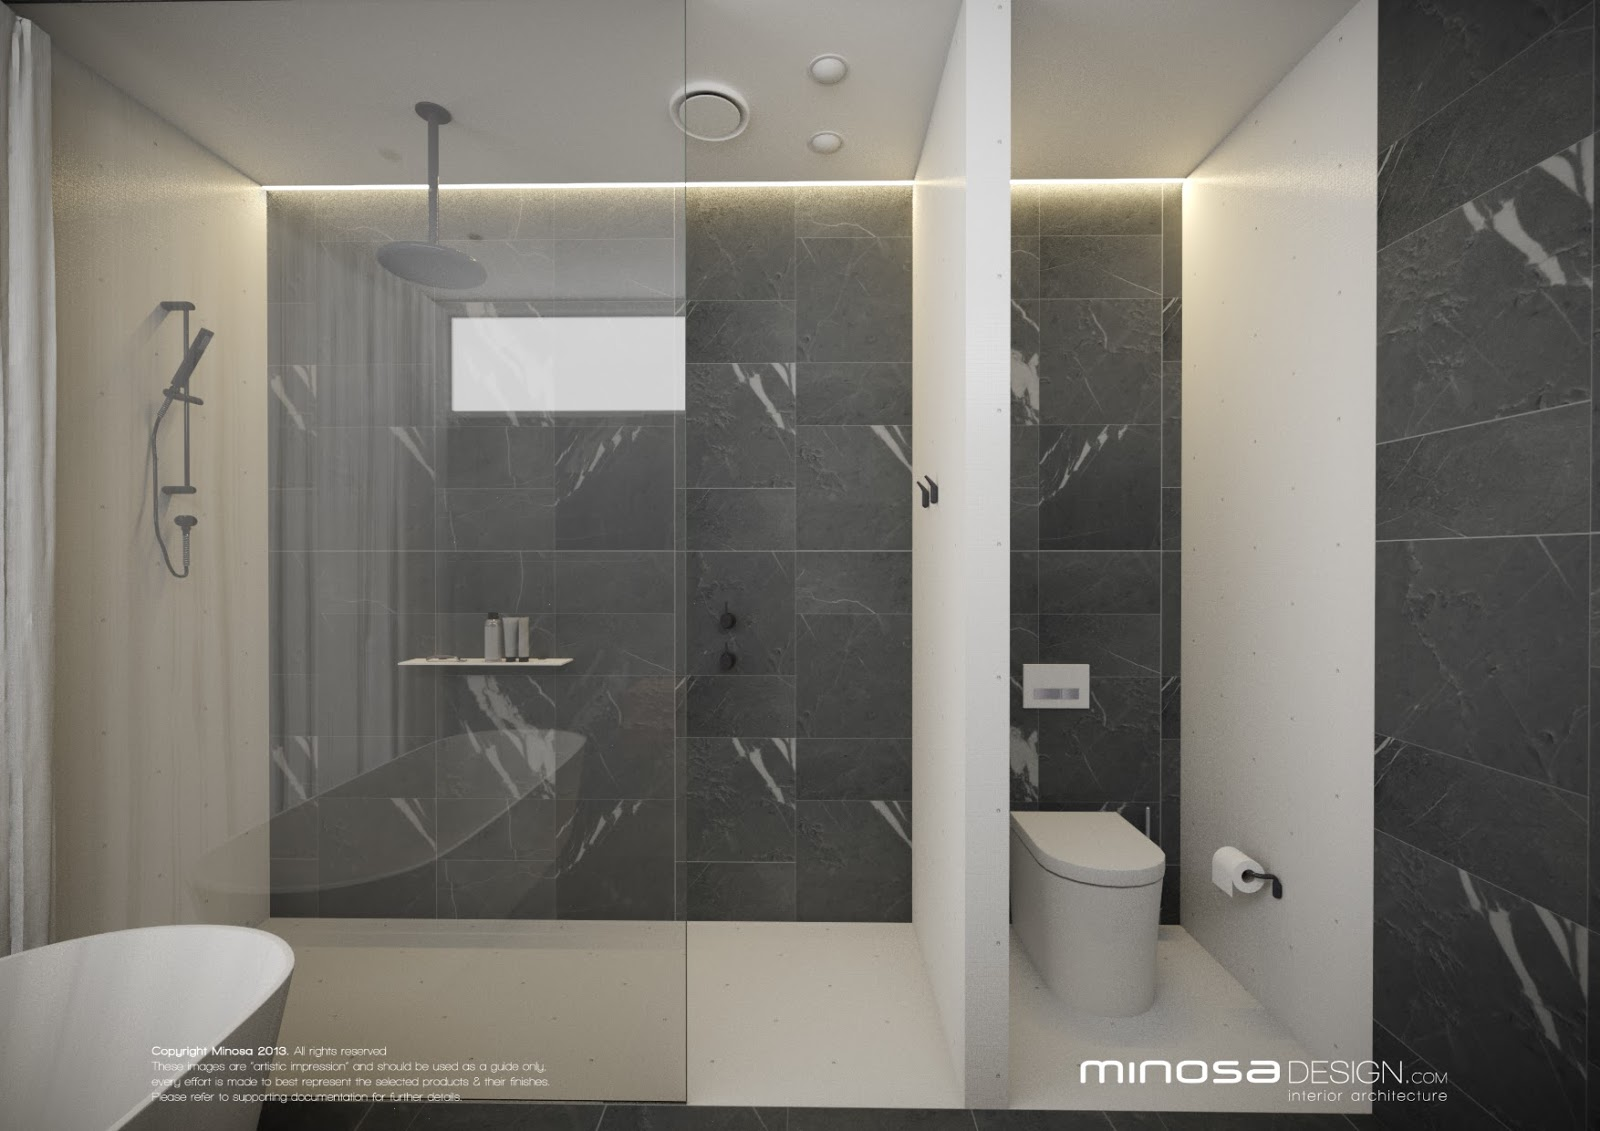 Minosa modern bathroom design to share for Modern small bathroom designs 2013